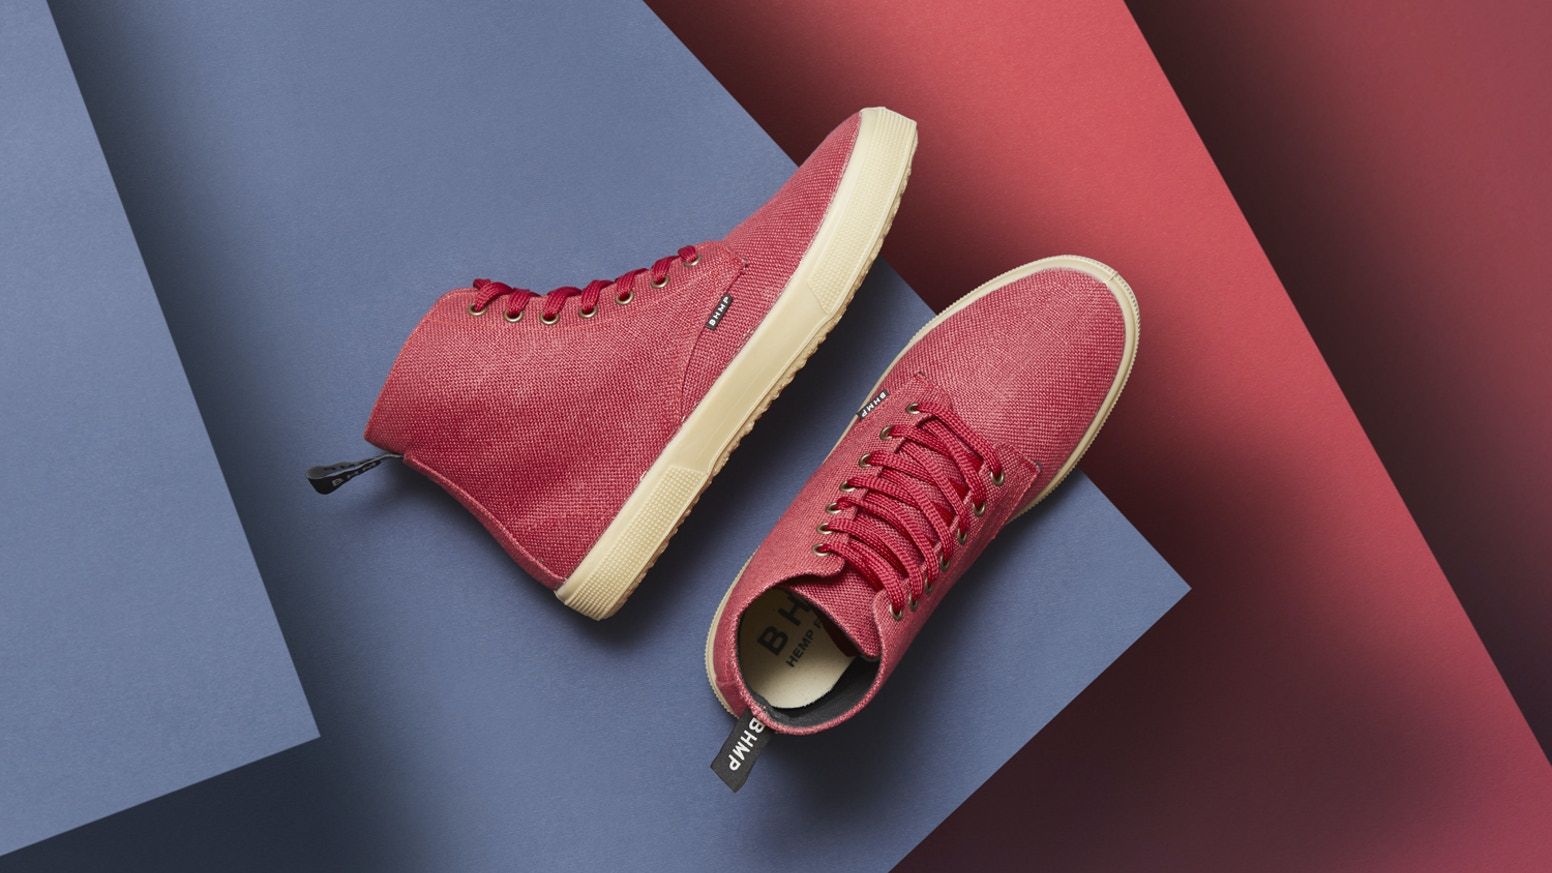 Comfortable, light, flexible and durable shoes that keep your feet dry and smelling fresh. Sustainably produced from Hemp.